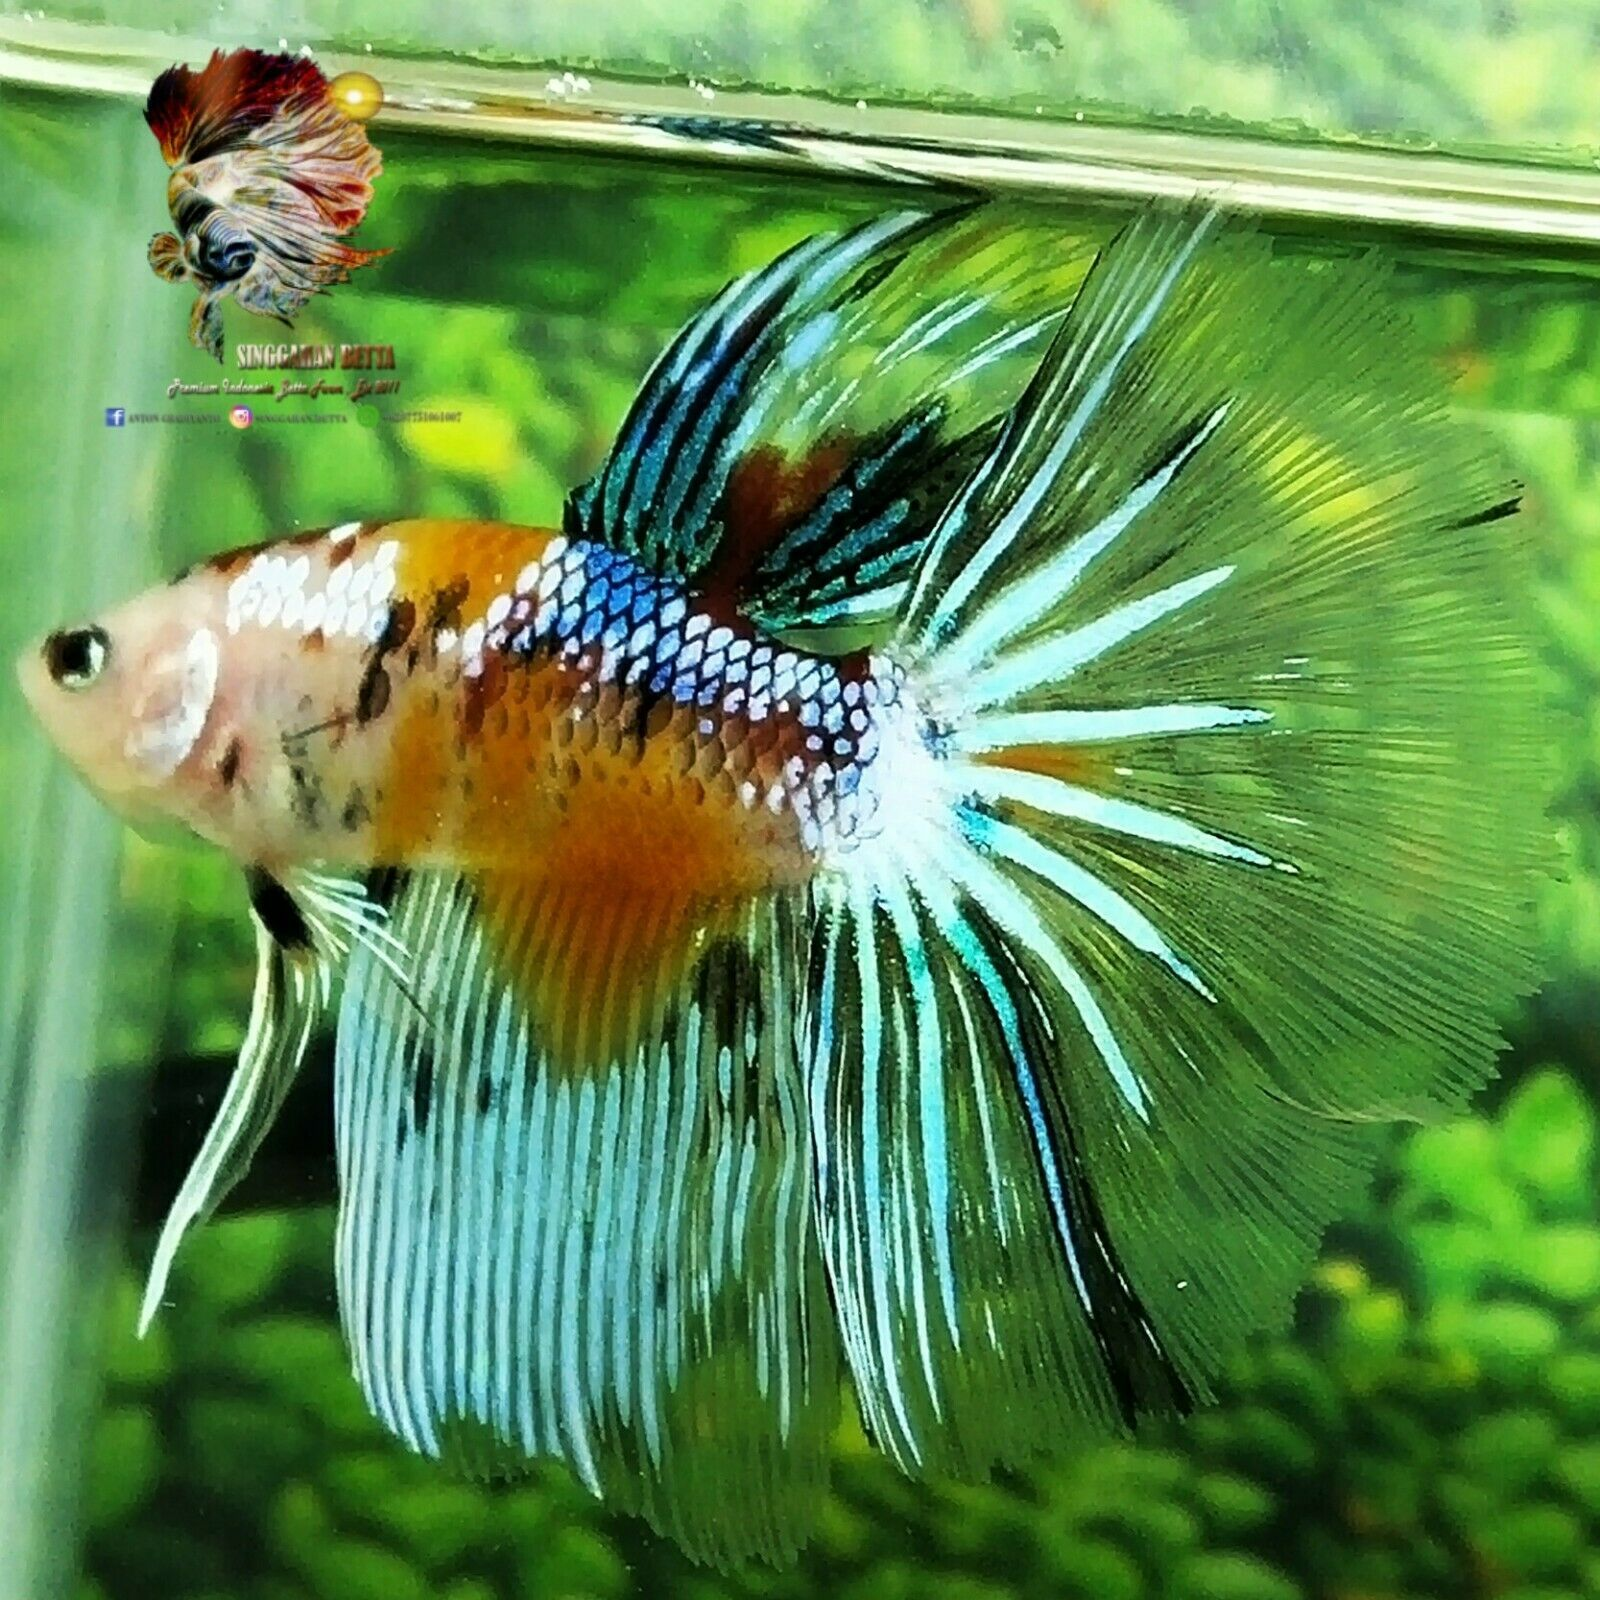 Live Betta Fish Orange Multicolor Samurai Hm Male From Indonesia Breeder Betta Fish Ideas Of Betta Fish Bettafish Live Betta Fish Betta Halfmoon Betta